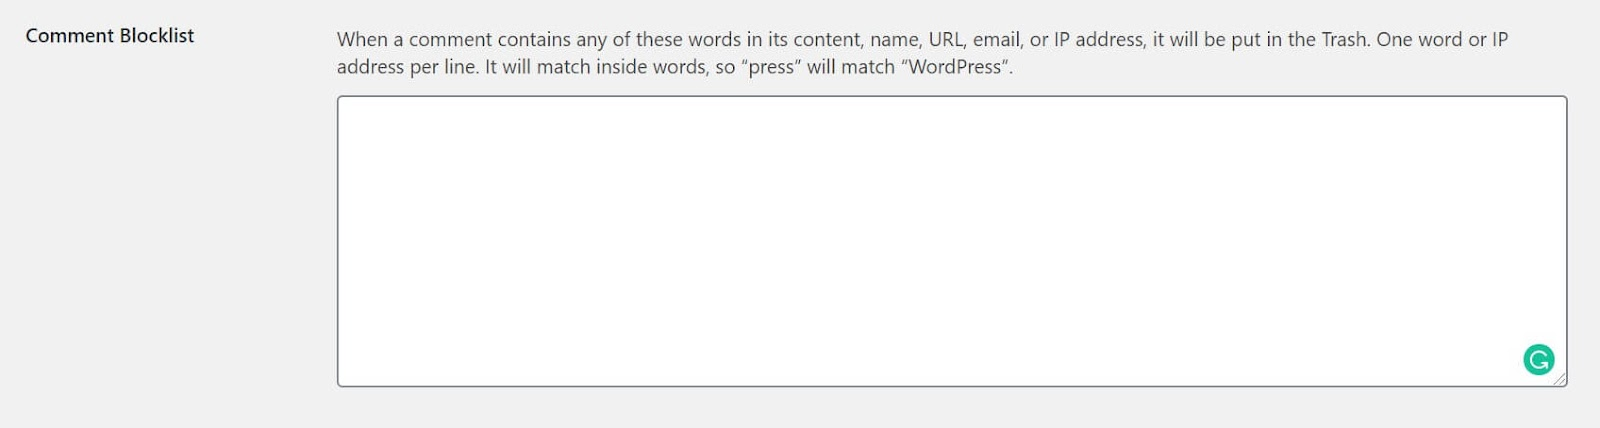 Screenshot showing how to edit the comments blacklist section of WordPress